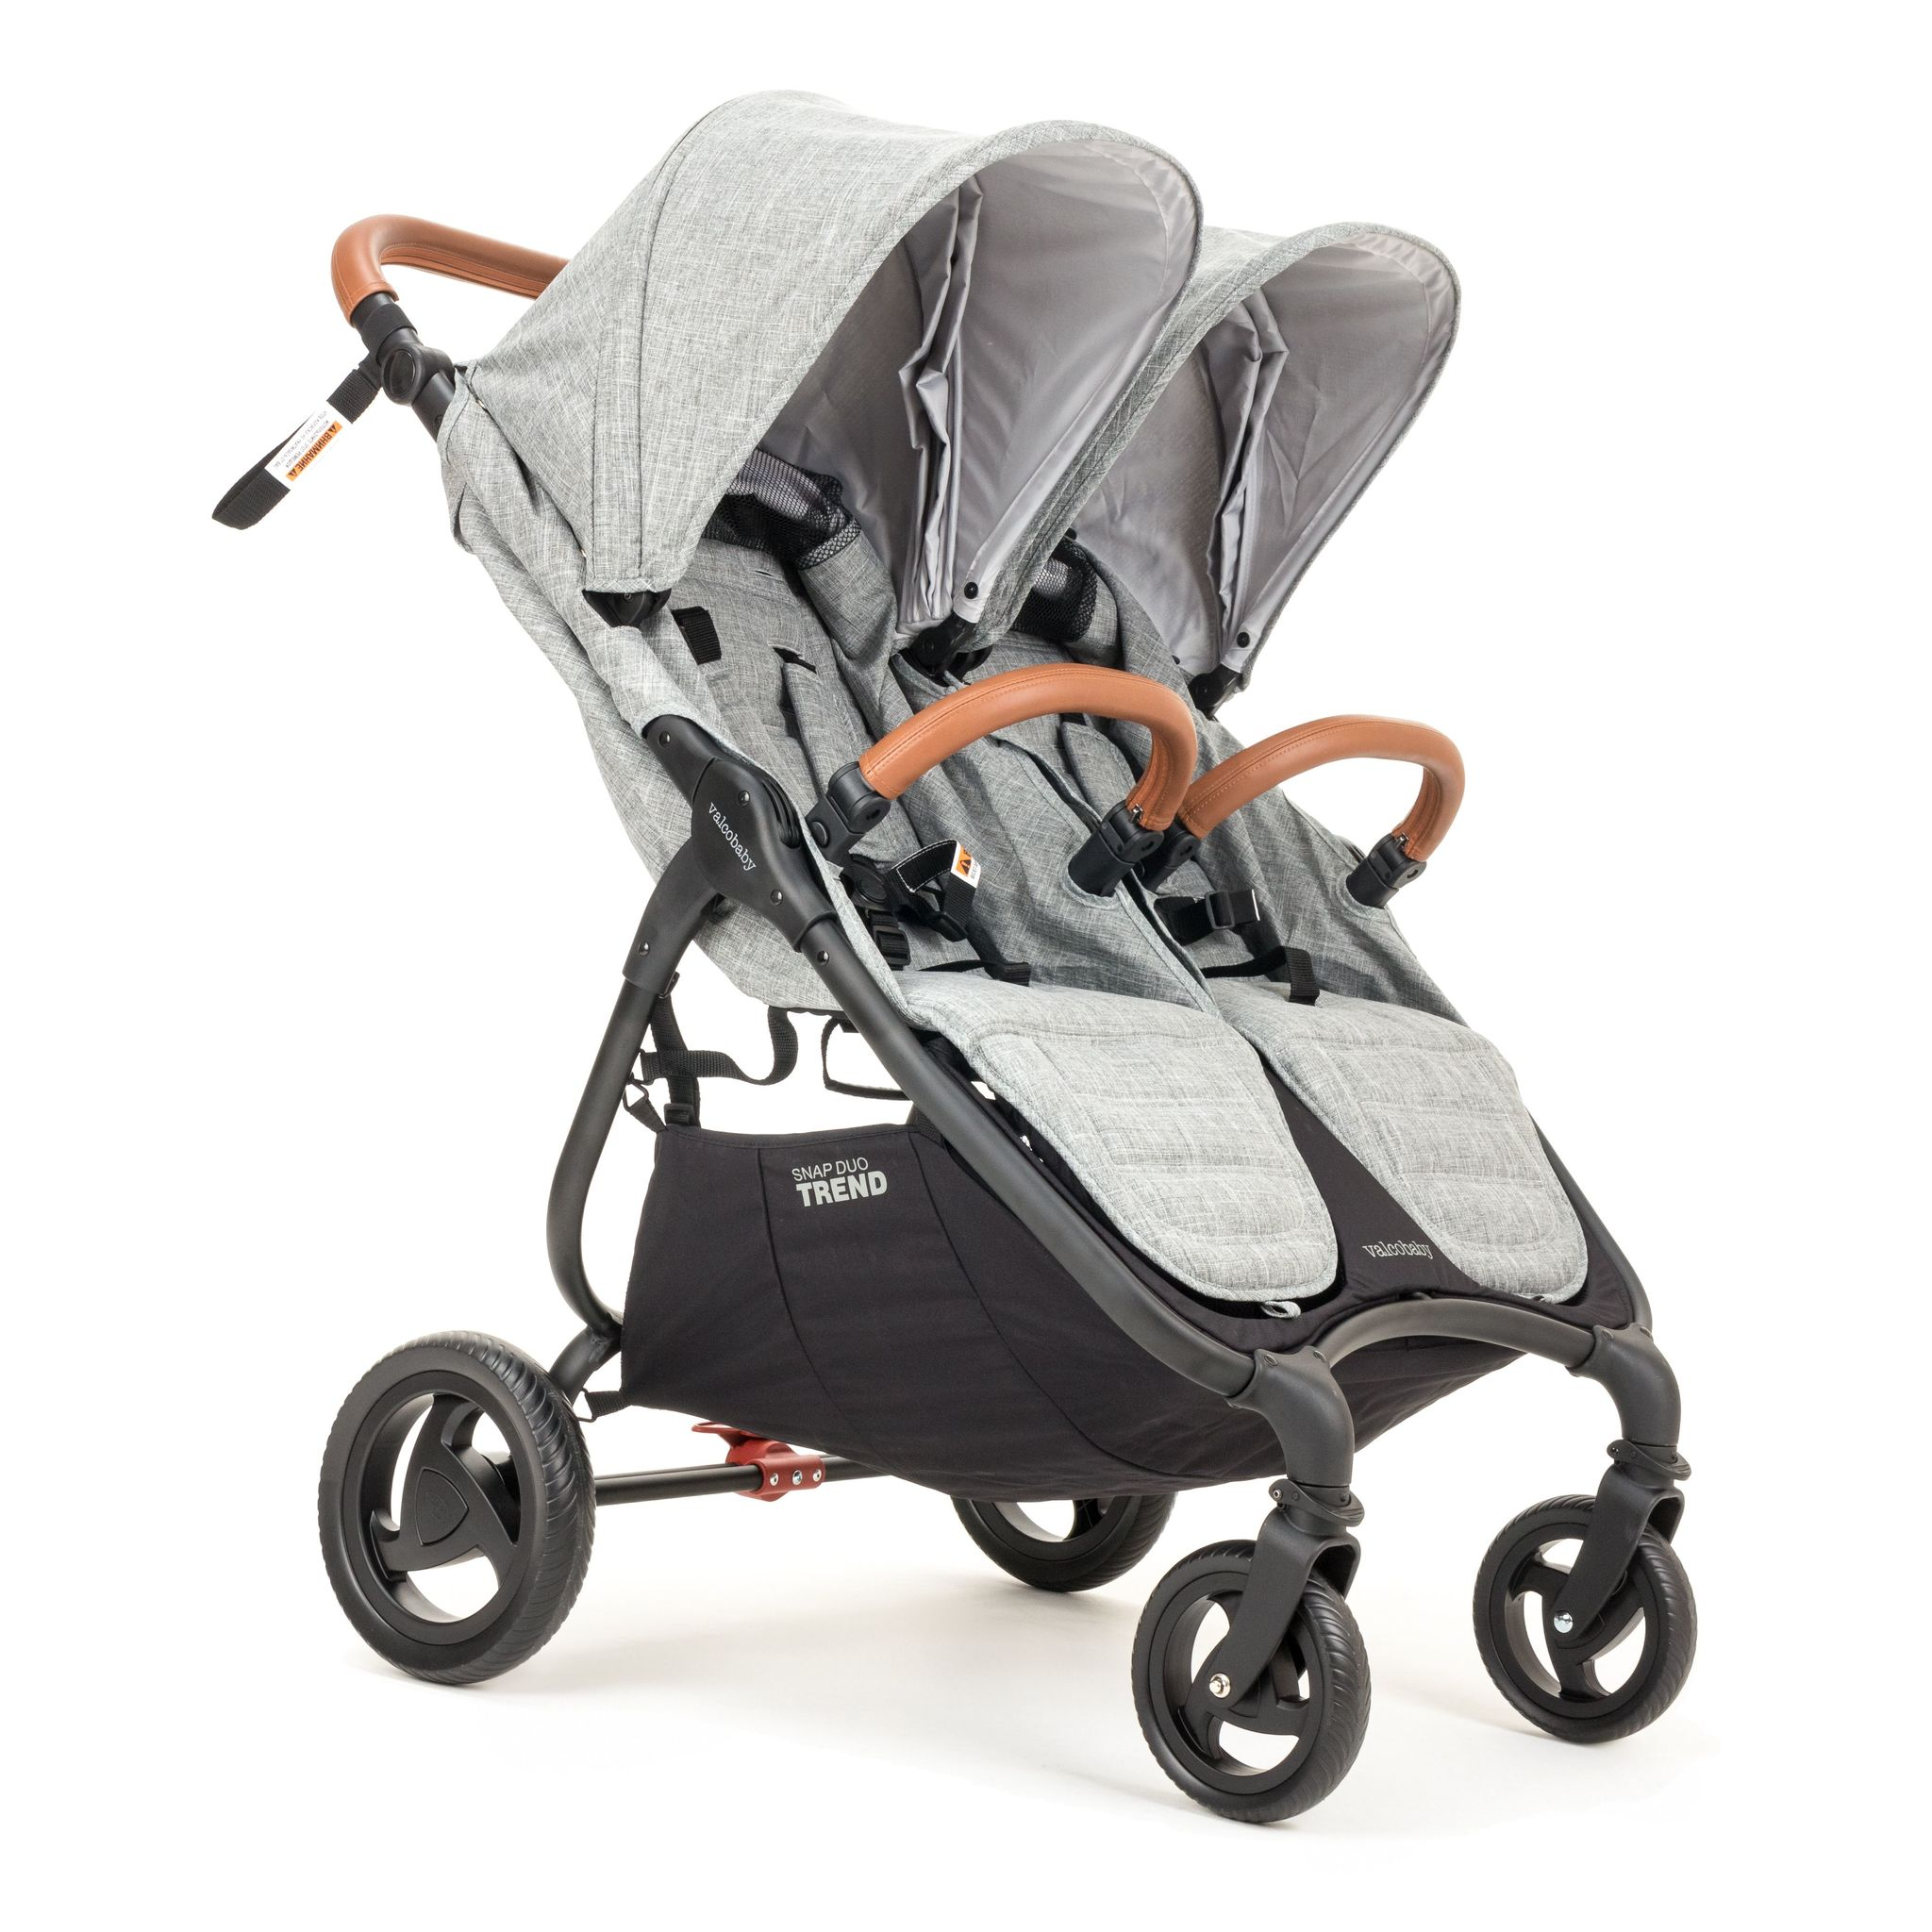 VALCO BABY SNAP DUO TREND VALCO BABY SNAP DUO TREND / 9938 WwRGS9z8.jpeg